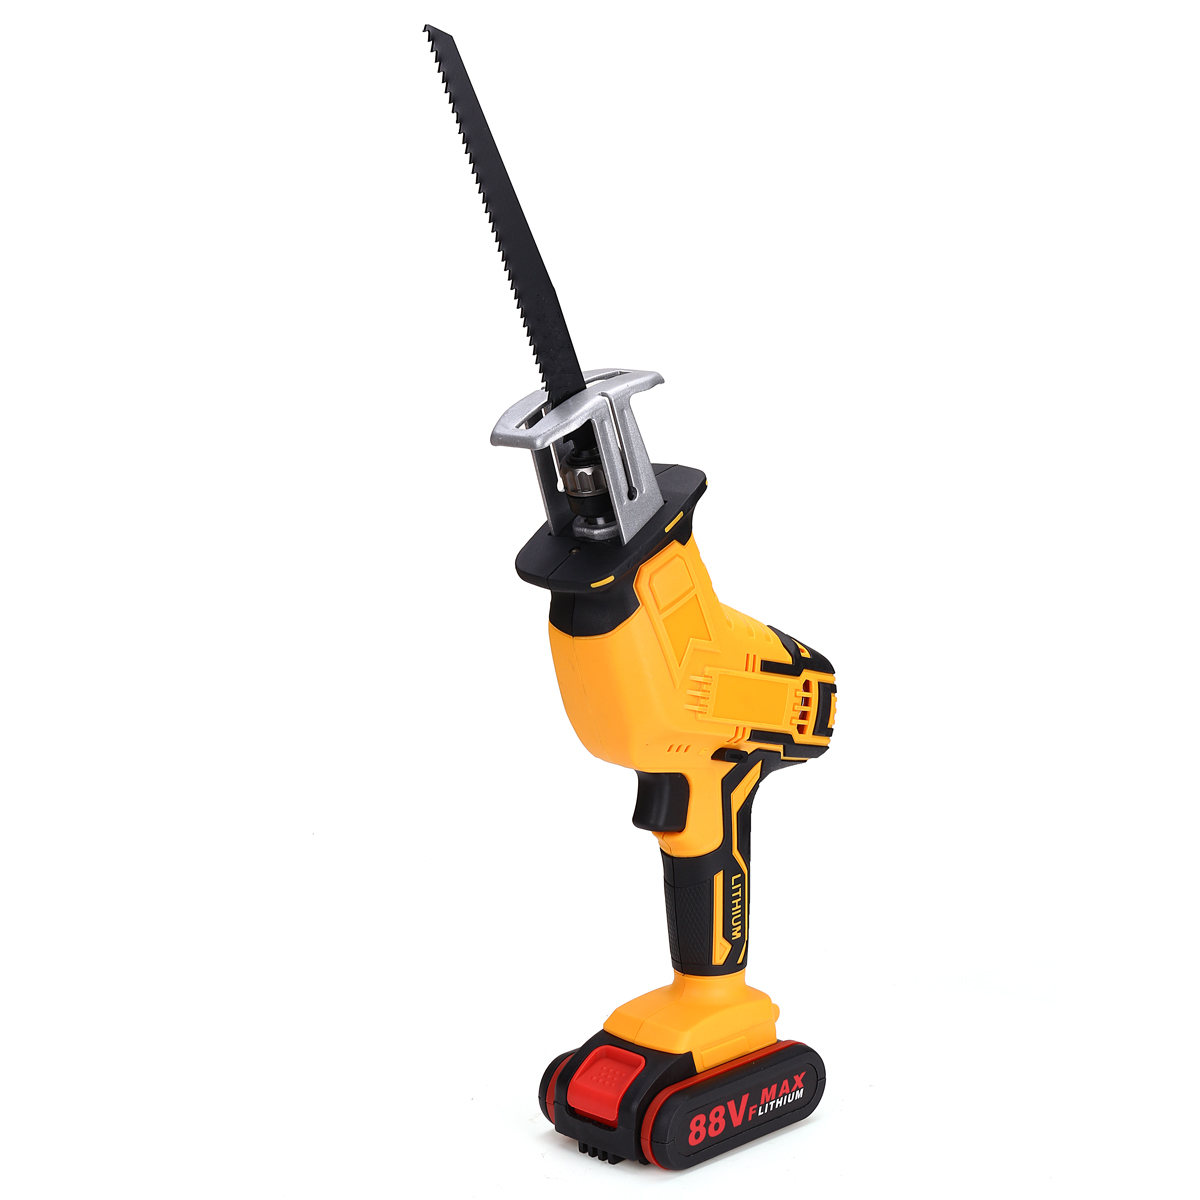 Woodworking With 4 Metal Prunning Battery Blades Cordless Li 1 Reciprocating Kit Saw 88V Ion Rechargeable 2 Cutting Saw Tool